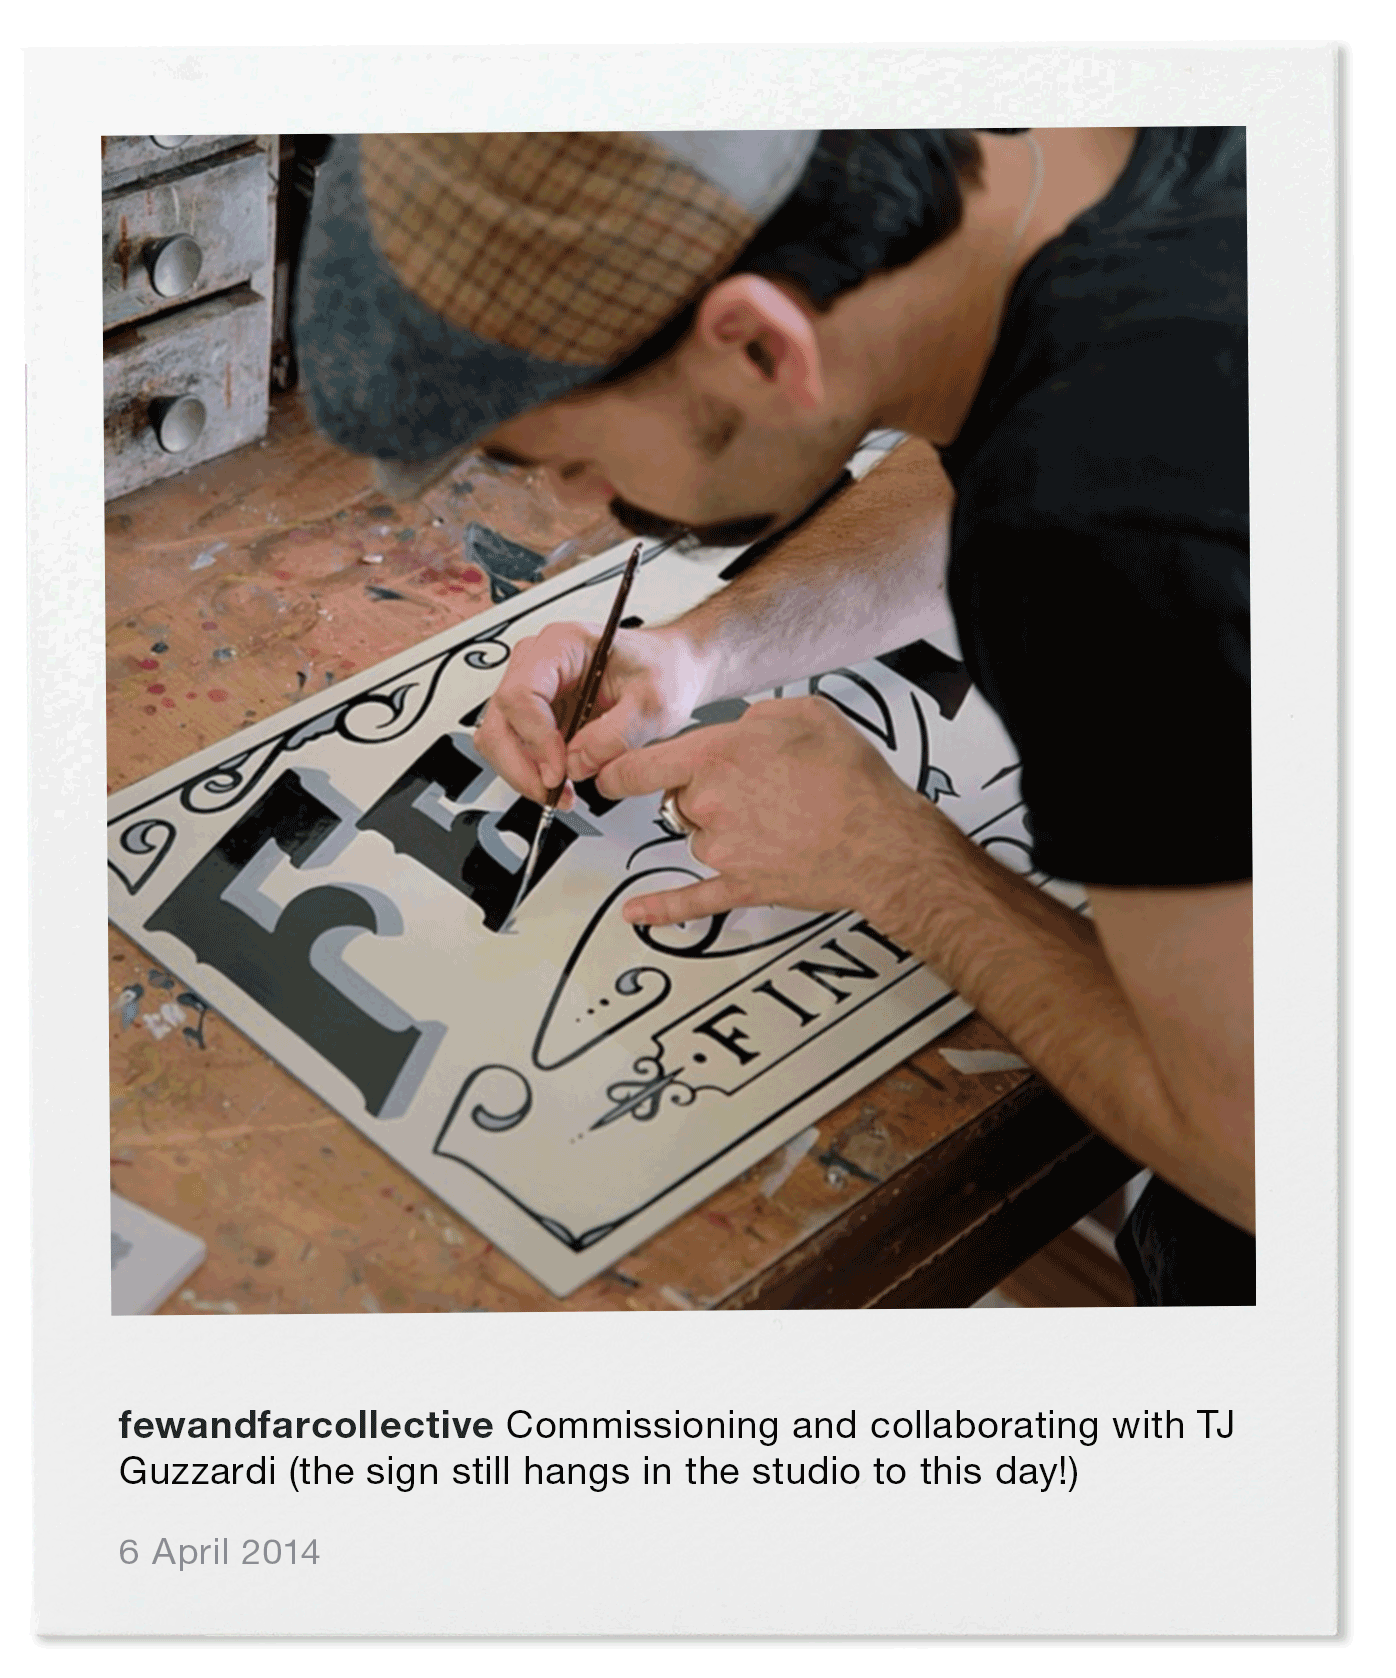 Commissioning and collaborating with TJ Guzzardi (the sign still hangs in the studio to this day!)